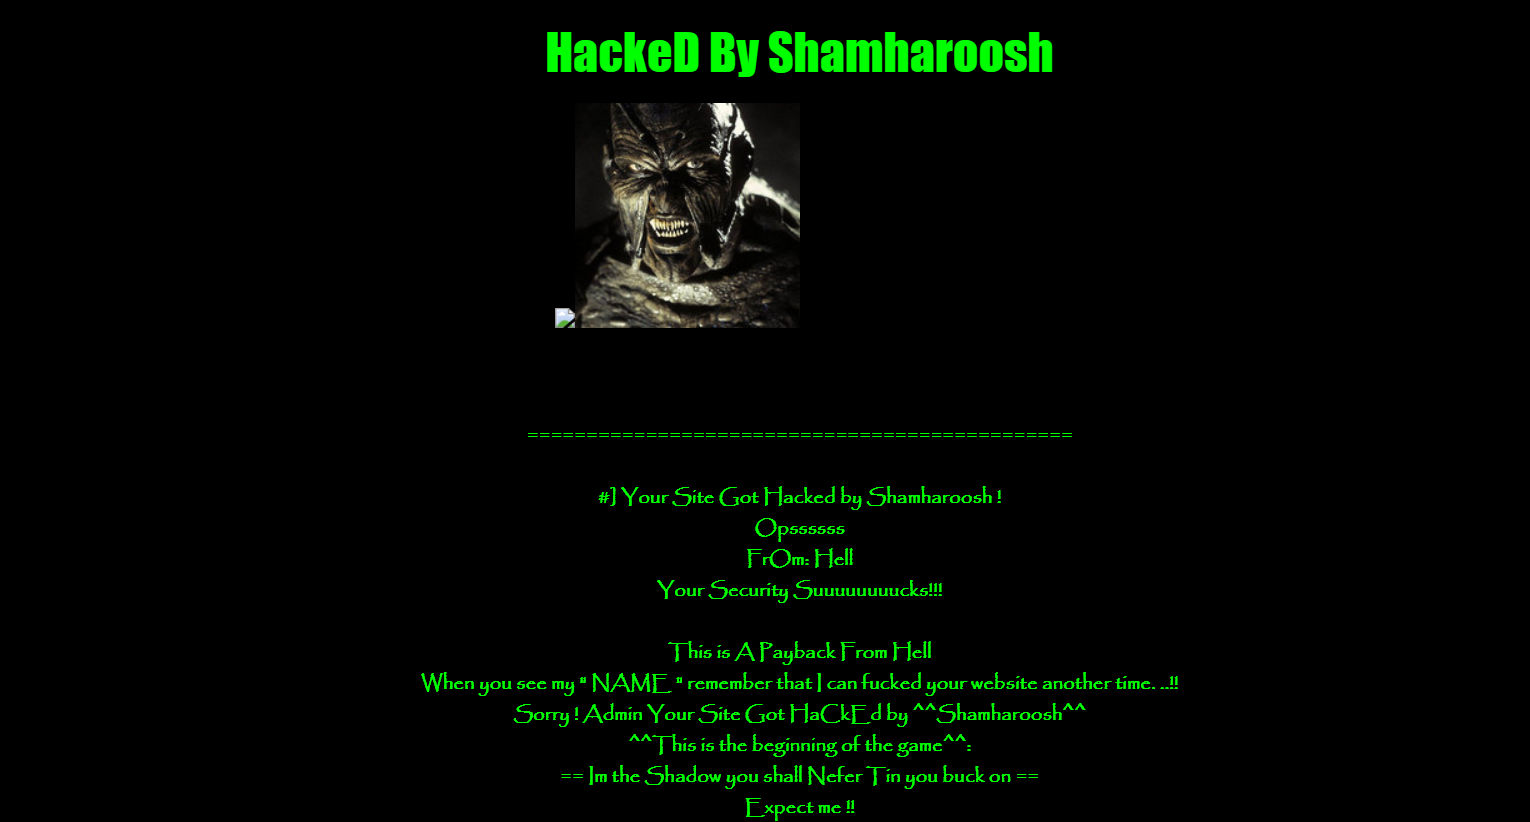 Nepali site hacked